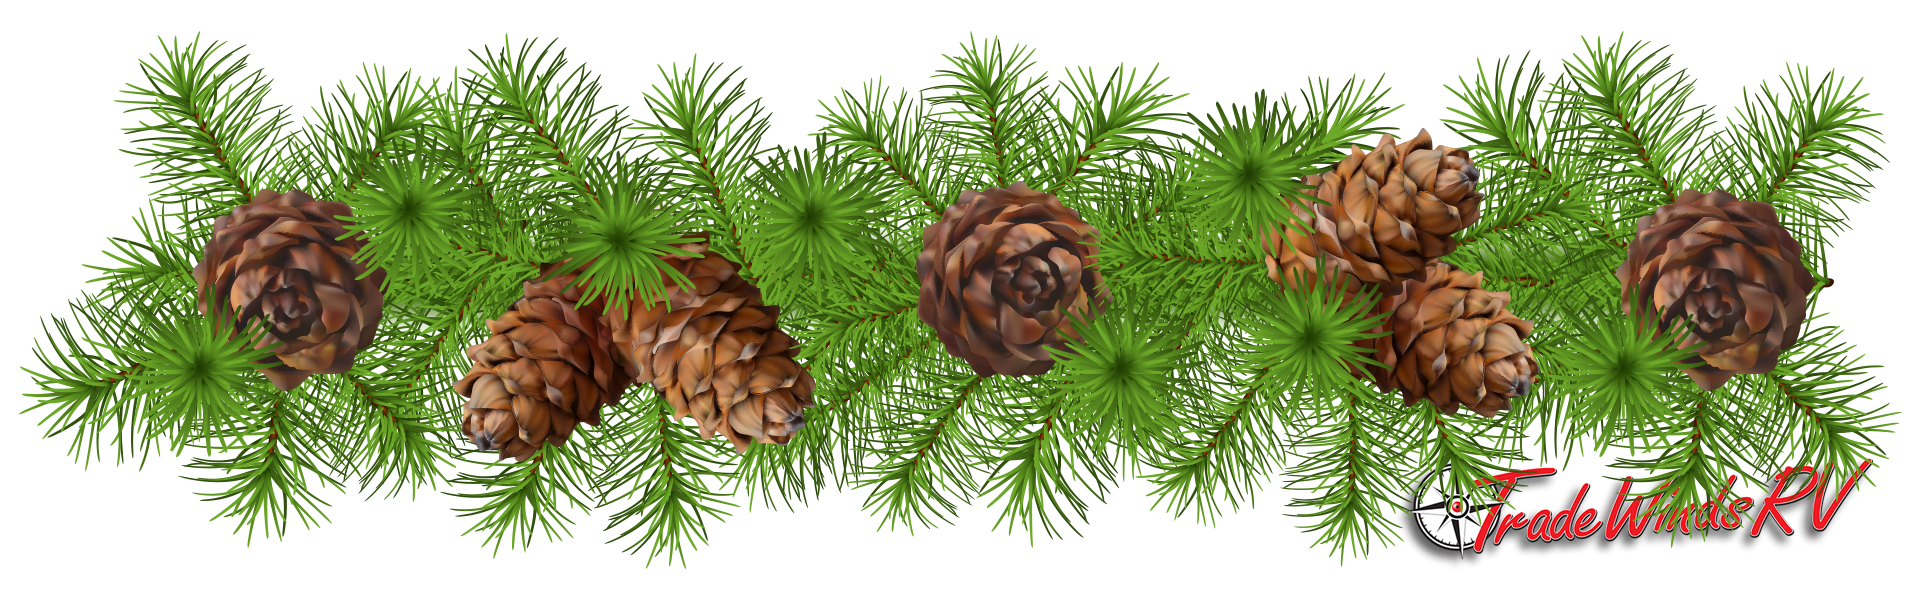 Pinecone clipart pinecone garland. Woodland decorations diy tradewinds